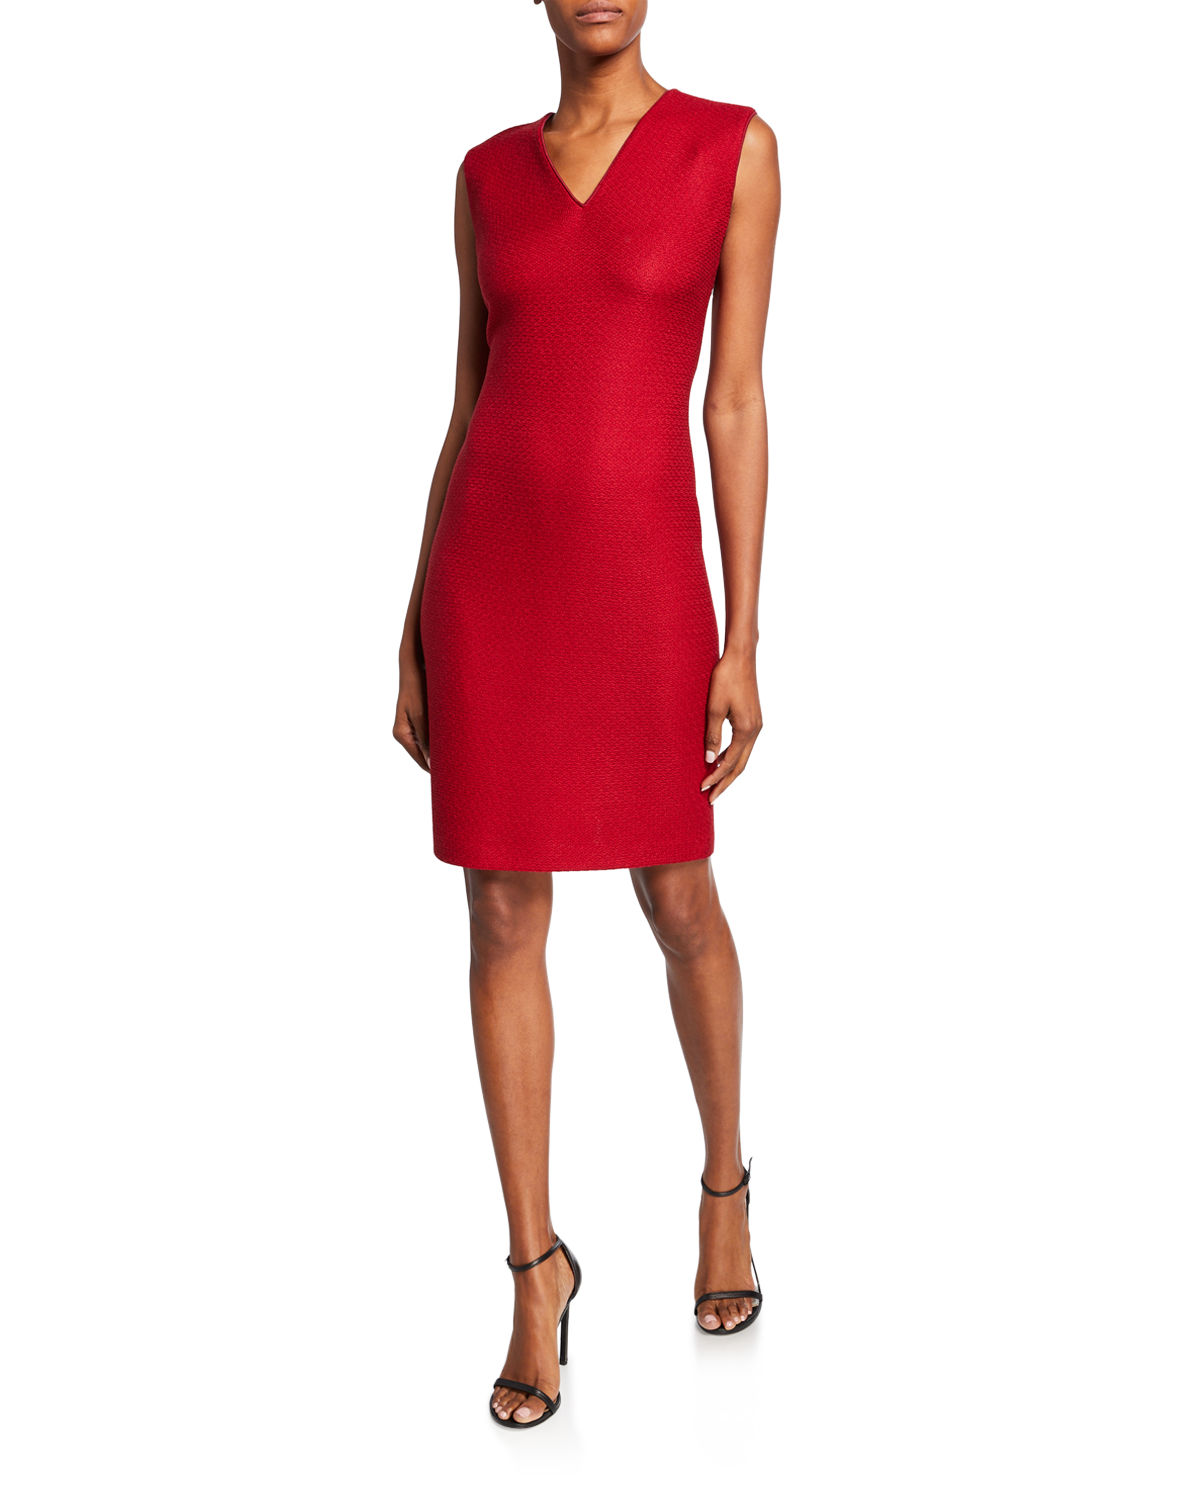 St. John Dresses V-NECK SLEEVELESS REFINED TEXTURED FLOAT KNIT DRESS W/ PIPING